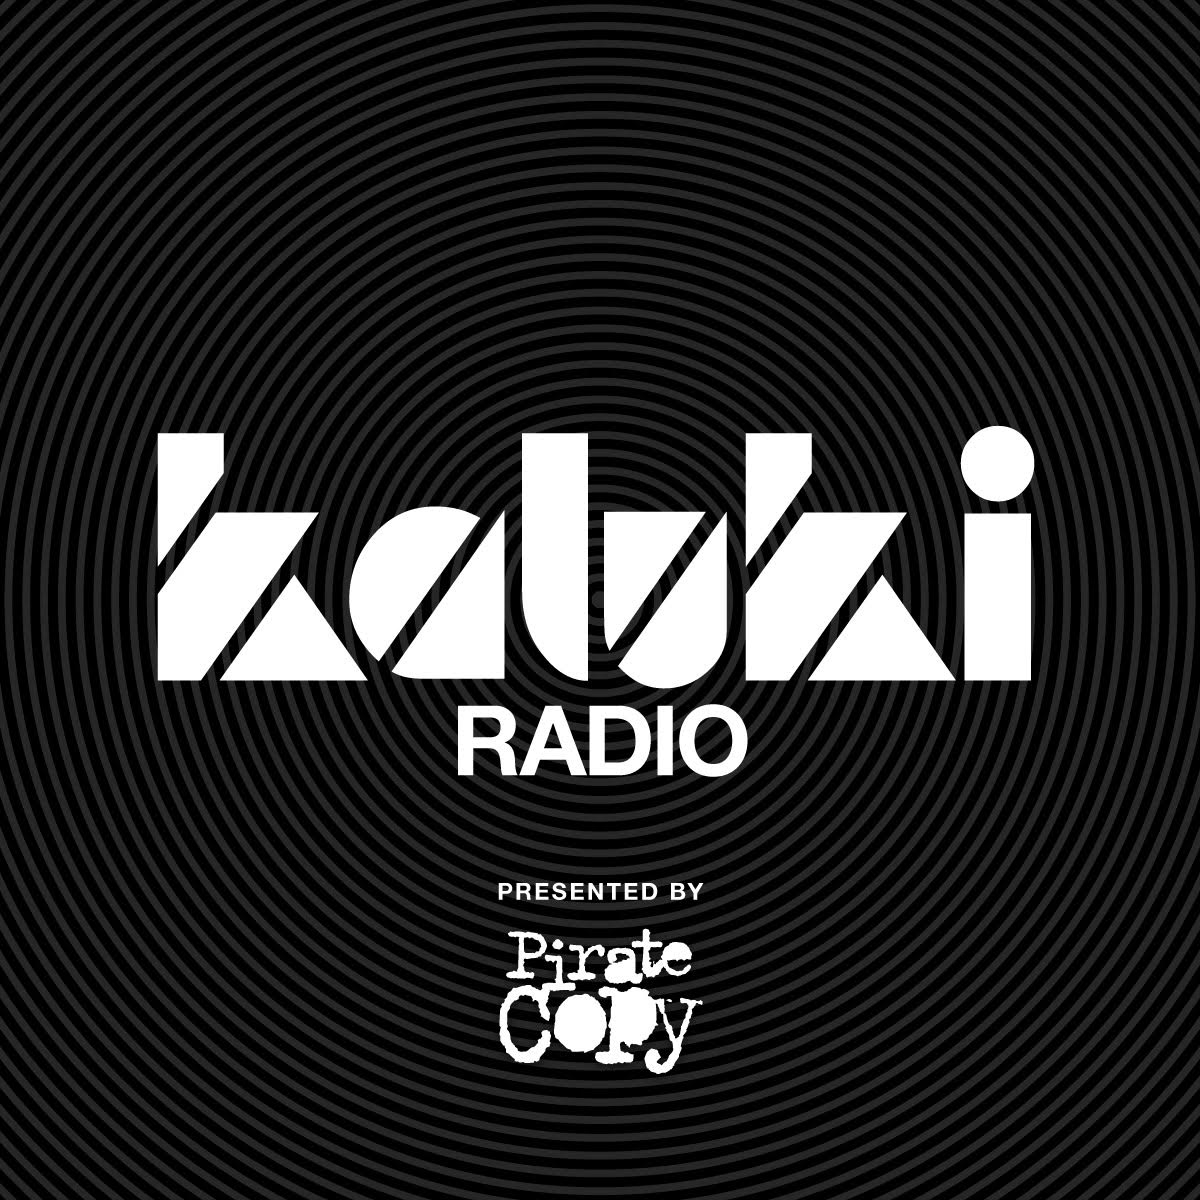 Kaluki Radio - LDC Radio - Leeds No.1 Dance Music FM Radio Station